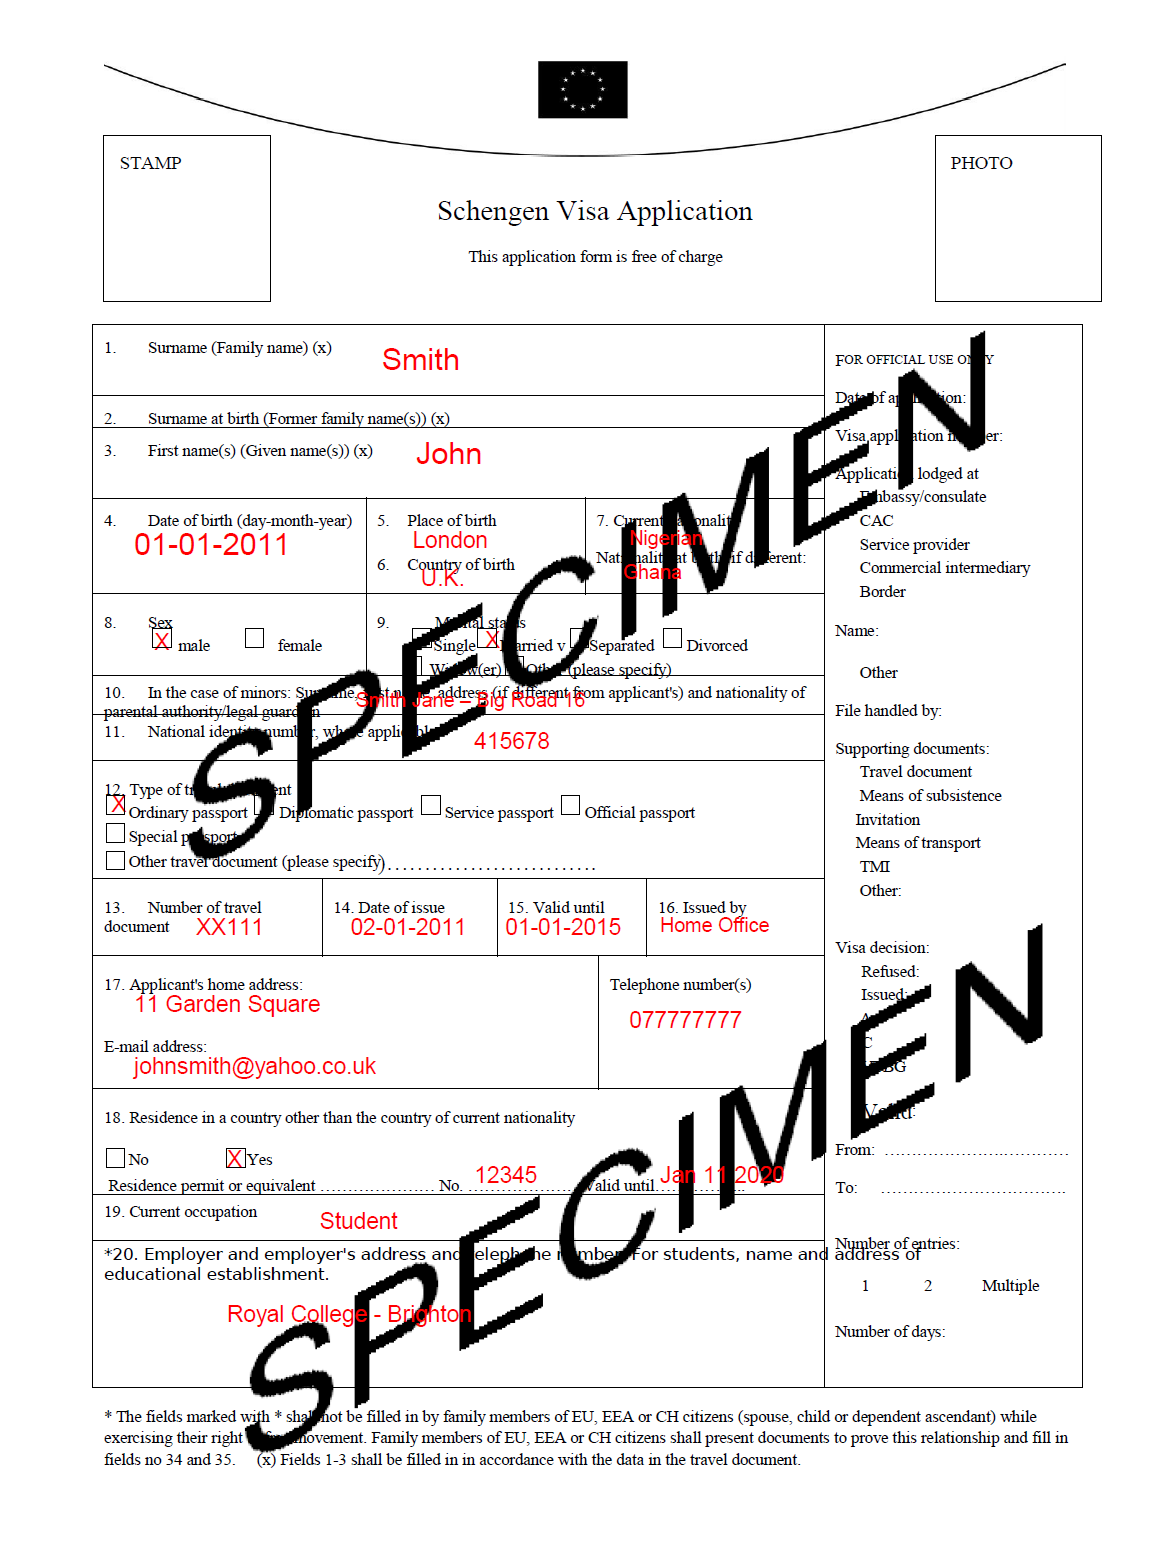 schengen visa information centre sample filled out application form